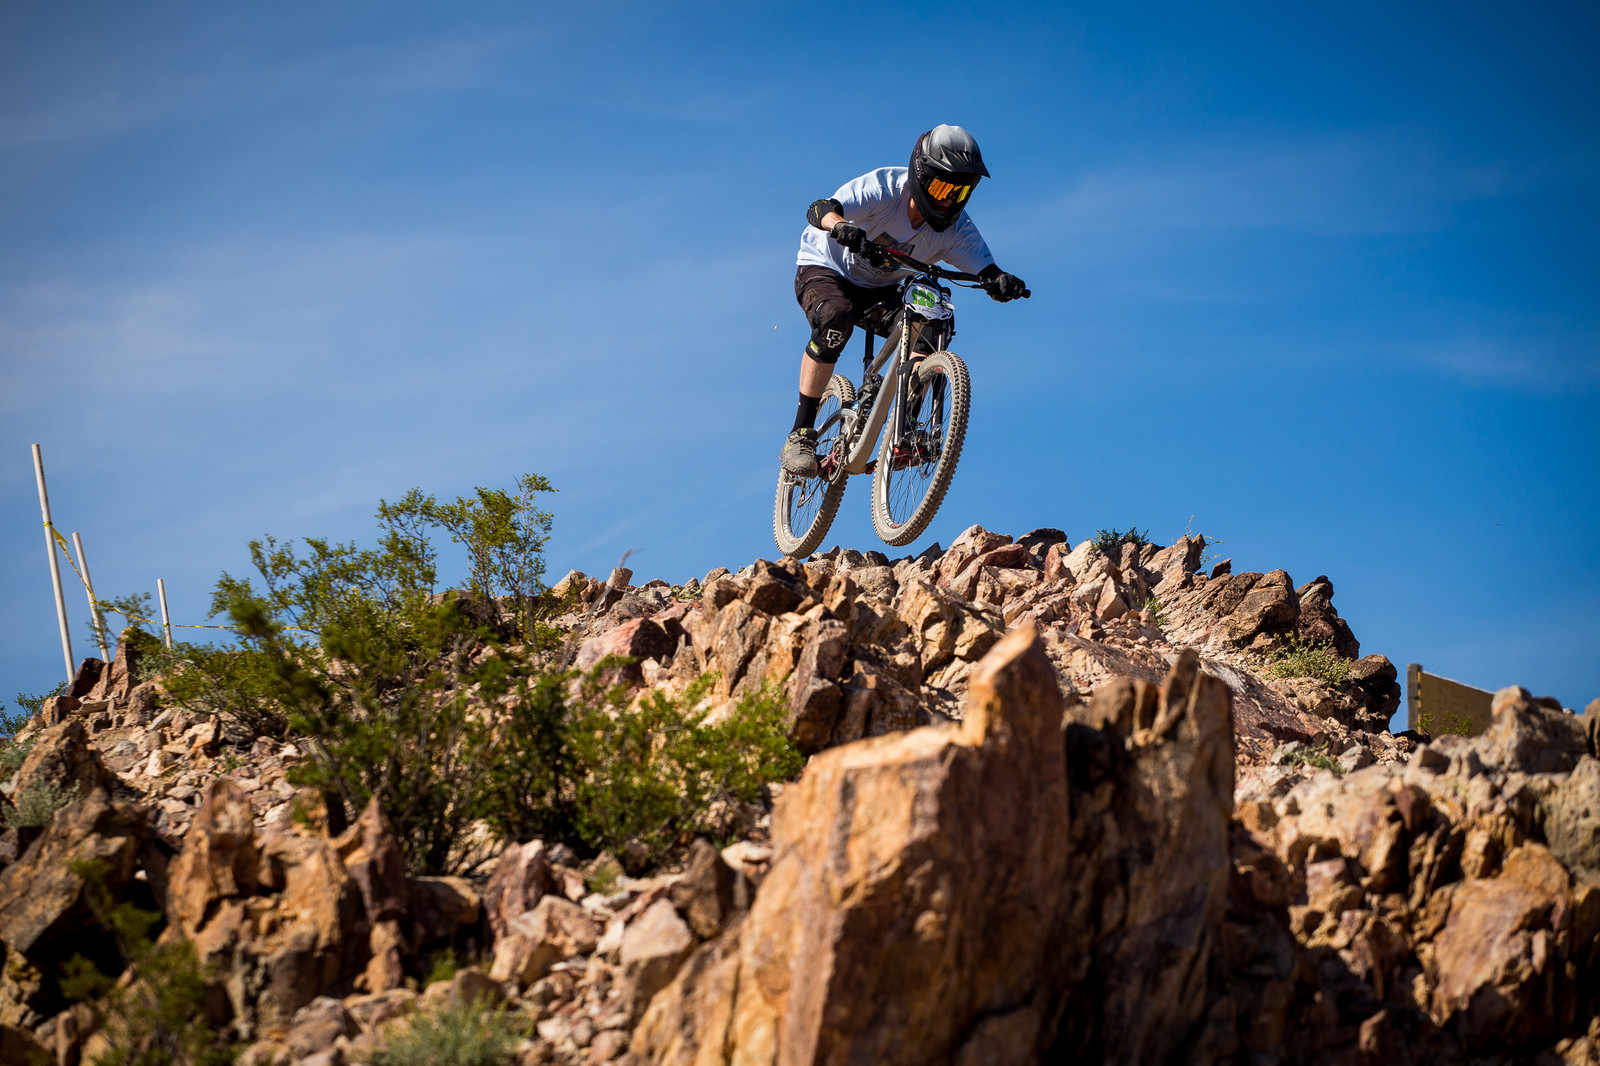 2017 Reaper Madness DH at Bootleg Canyon-1 - 2017 Reaper Madness DH Photos - Mountain Biking Pictures - Vital MTB